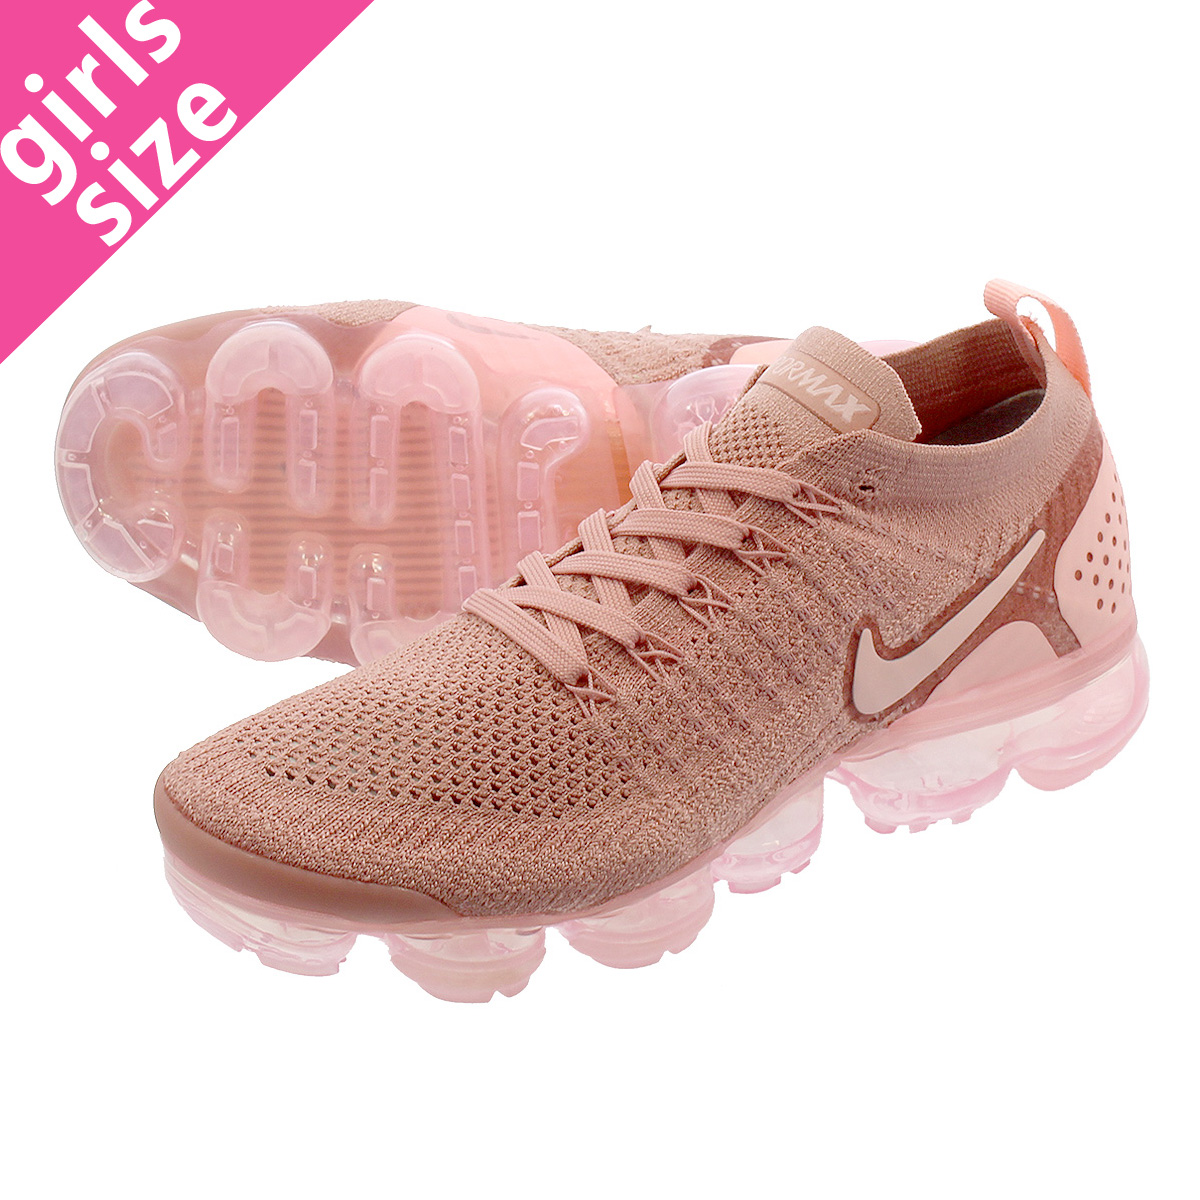 5911eb9bad LOWTEX PLUS: NIKE WMNS AIR VAPORMAX FLYKNIT 2 Nike women vapor max fried  food knit RUST PINK/STORM PINK/PINK TINT 942,843-600 | Rakuten Global Market